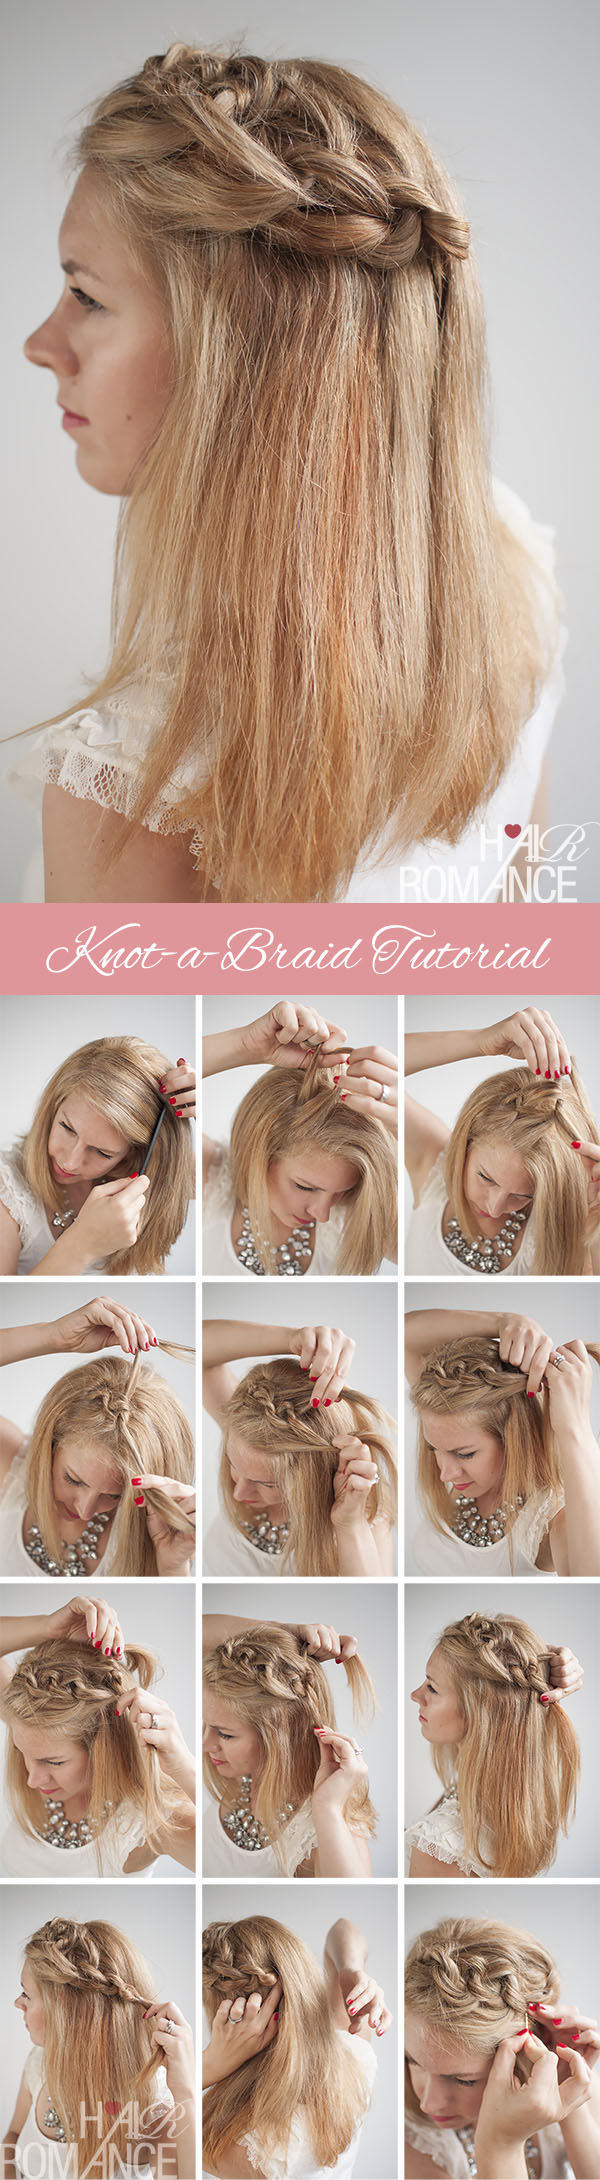 Hair-Romance-Knot-a-braid-hairstyle-tutorial